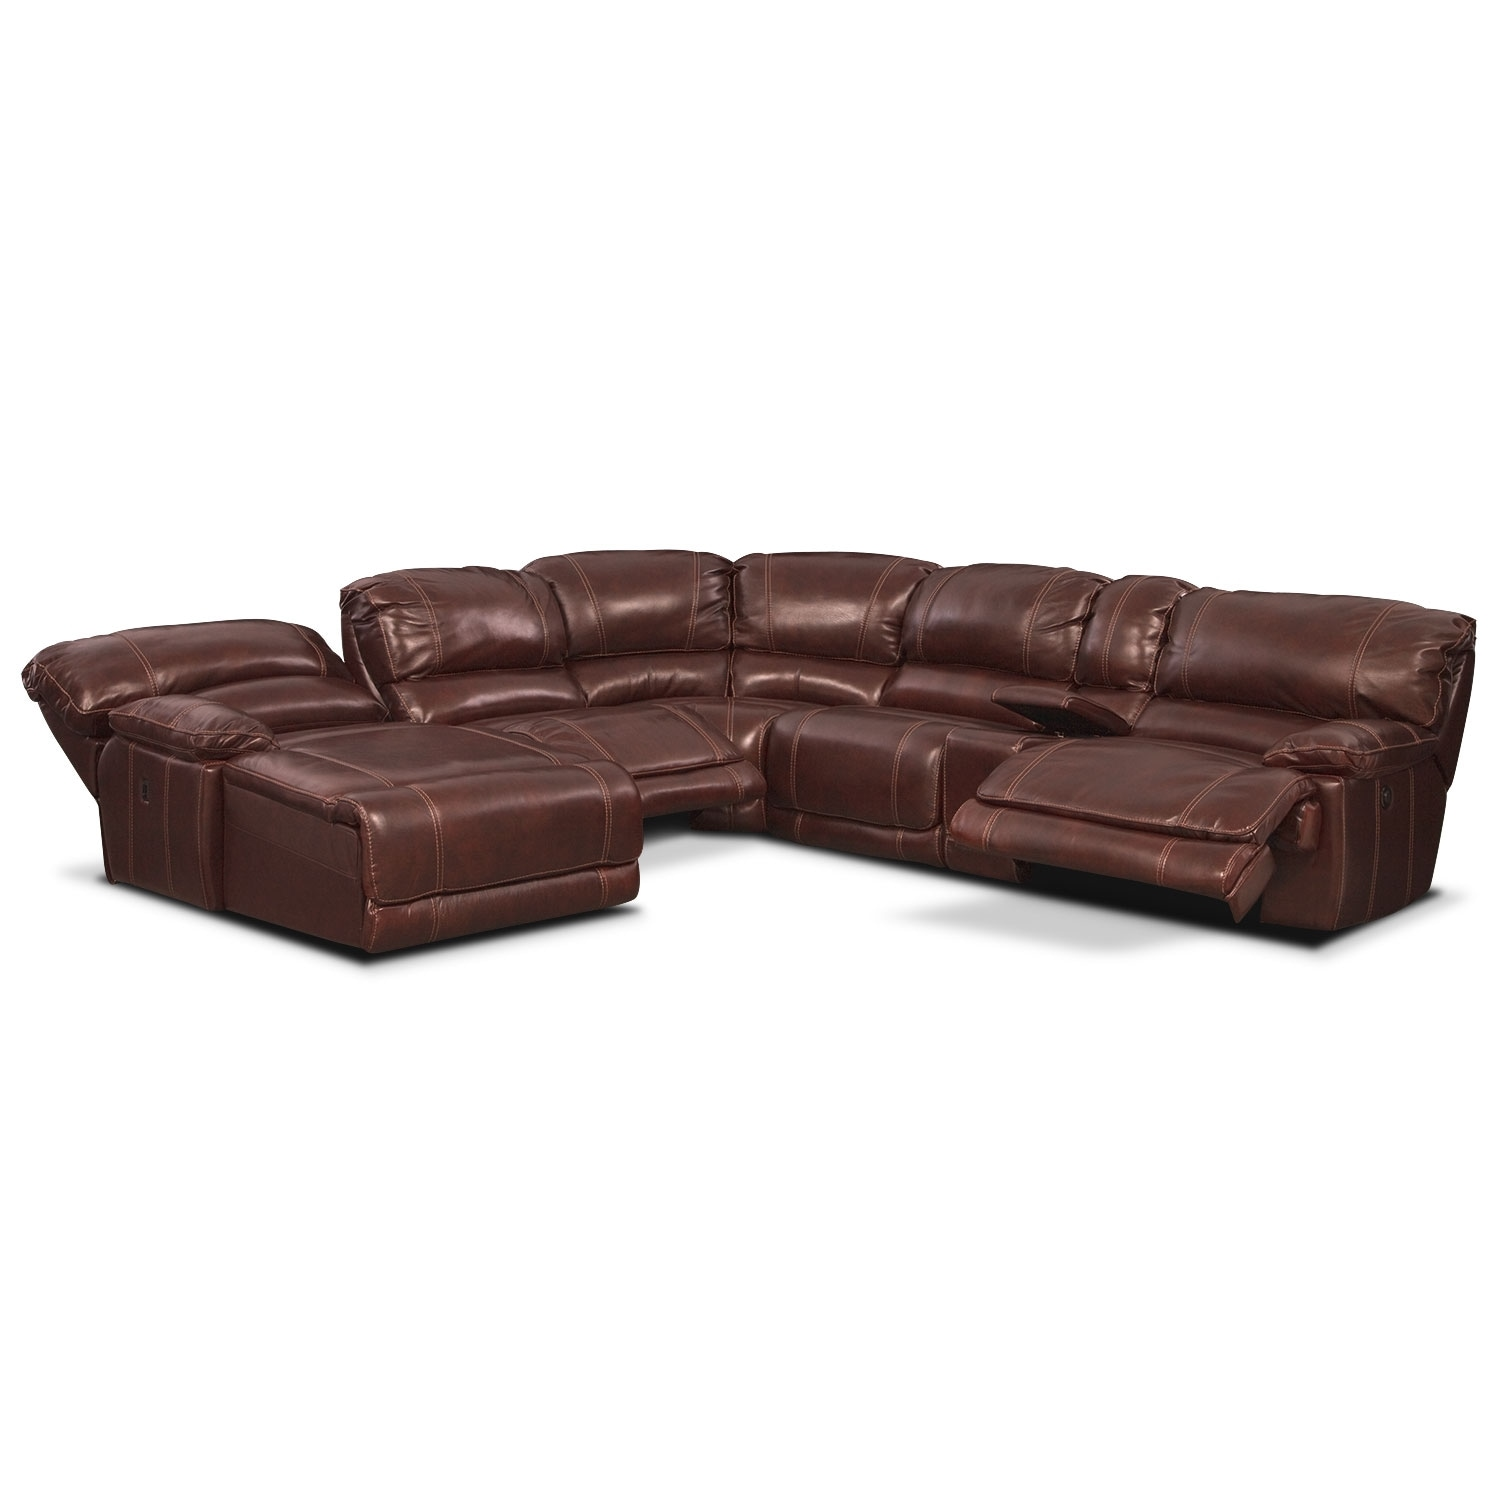 St malo 6 piece power reclining sectional with left for Burgundy chaise